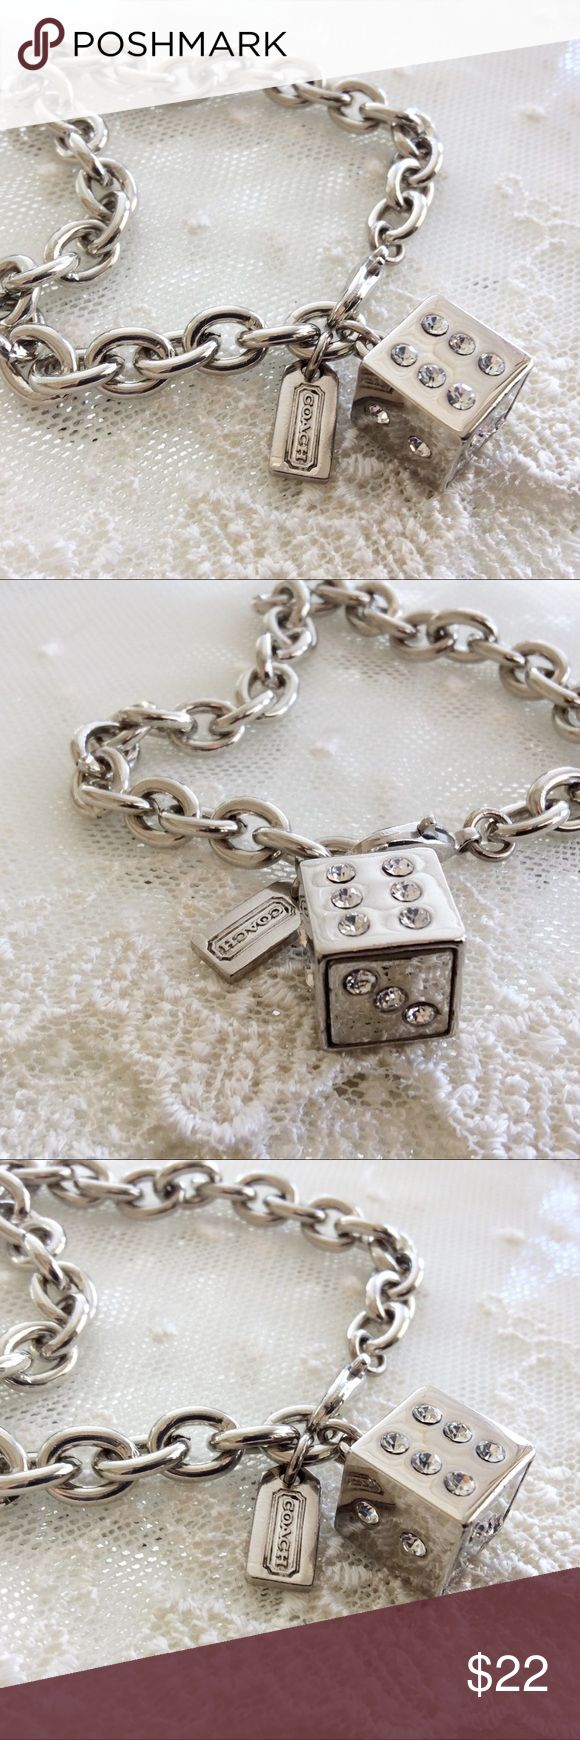 """Coach 3D Lucky Dice Charm Bracelet 🎀NOTE TO BUYERS... all my items are marked to lowest price. PLEASE DON'T MAKE OFFERS, MY PRICE IS FIRM. Thank you and have a Wonderful Day!🎀 100% Guaranteed Authentic Coach 3D Lucky Dice & Hangtag charms on CUSTOM 8"""" silver bracelet with lobster closure clasp. No box included. Brand New! I CAN ADJUST TO ANY SIZE NEEDED.... Top Rated ⭐️⭐️⭐️⭐️⭐️Seller! Follow me so you can be notified of new items listed! Take a peek at my other listings for more…"""